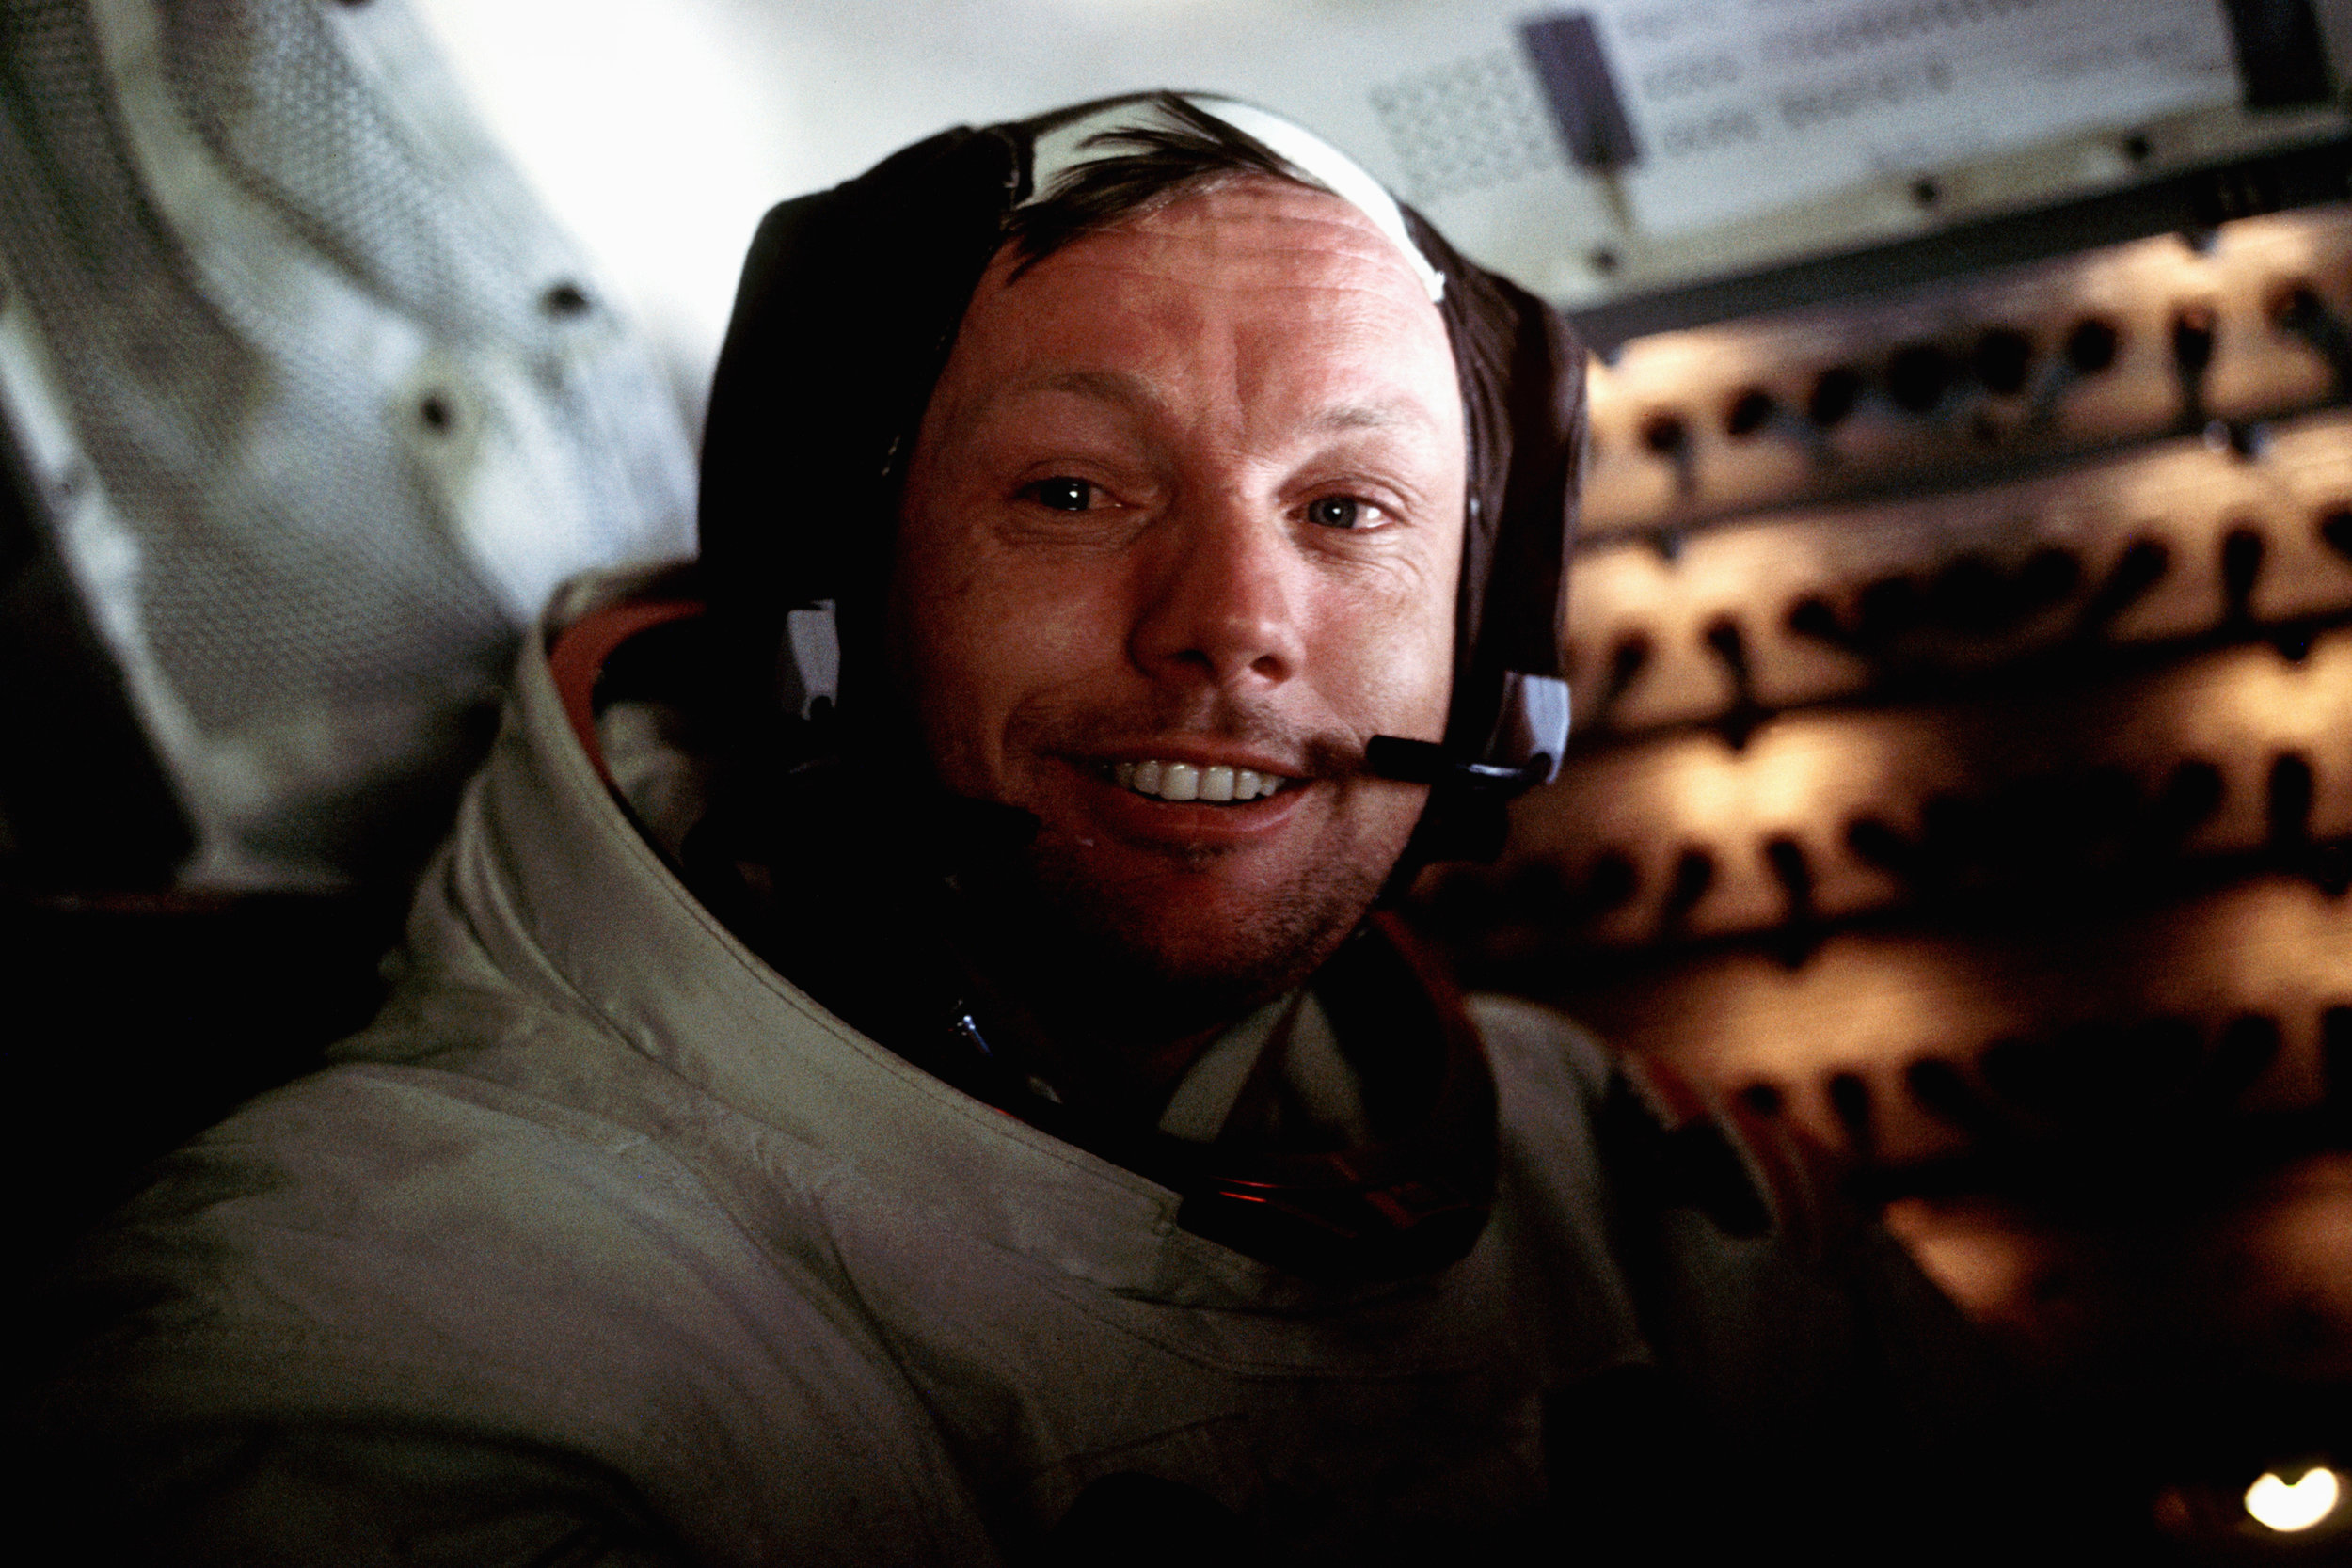 A very relaxed Neil Armstrong. In the week preceding the fiftieth anniversary of the Apollo 11 landing, a rare image of Armstrong on the Moon's surface has been created from a composite of three images taken from the Lunar Module.